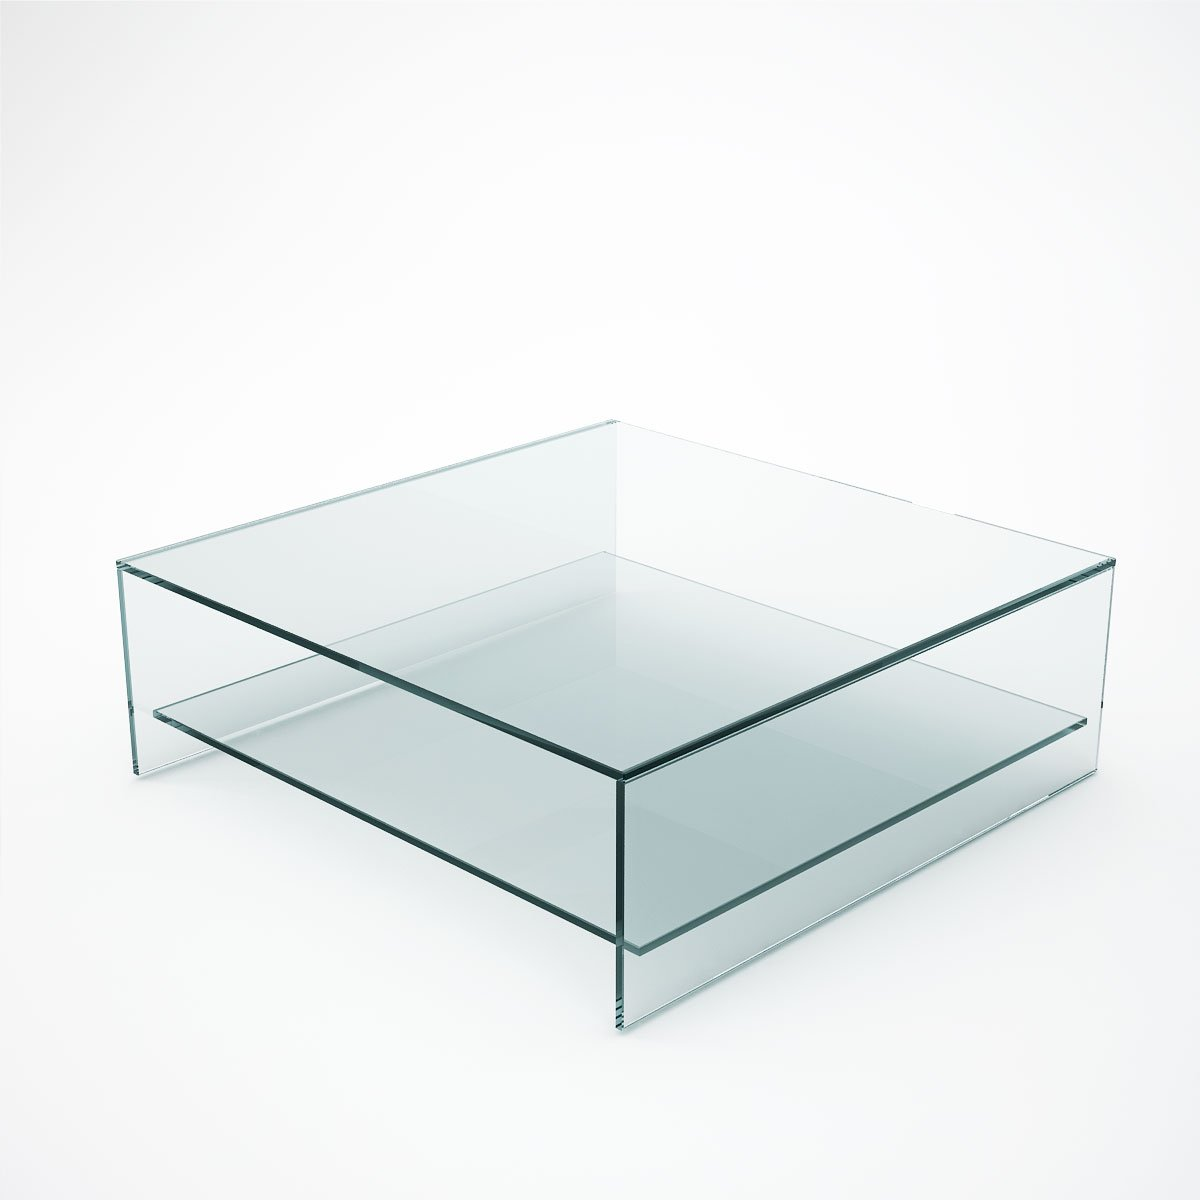 Judd square glass coffee table with shelf klarity glass furniture Coffee tables glass